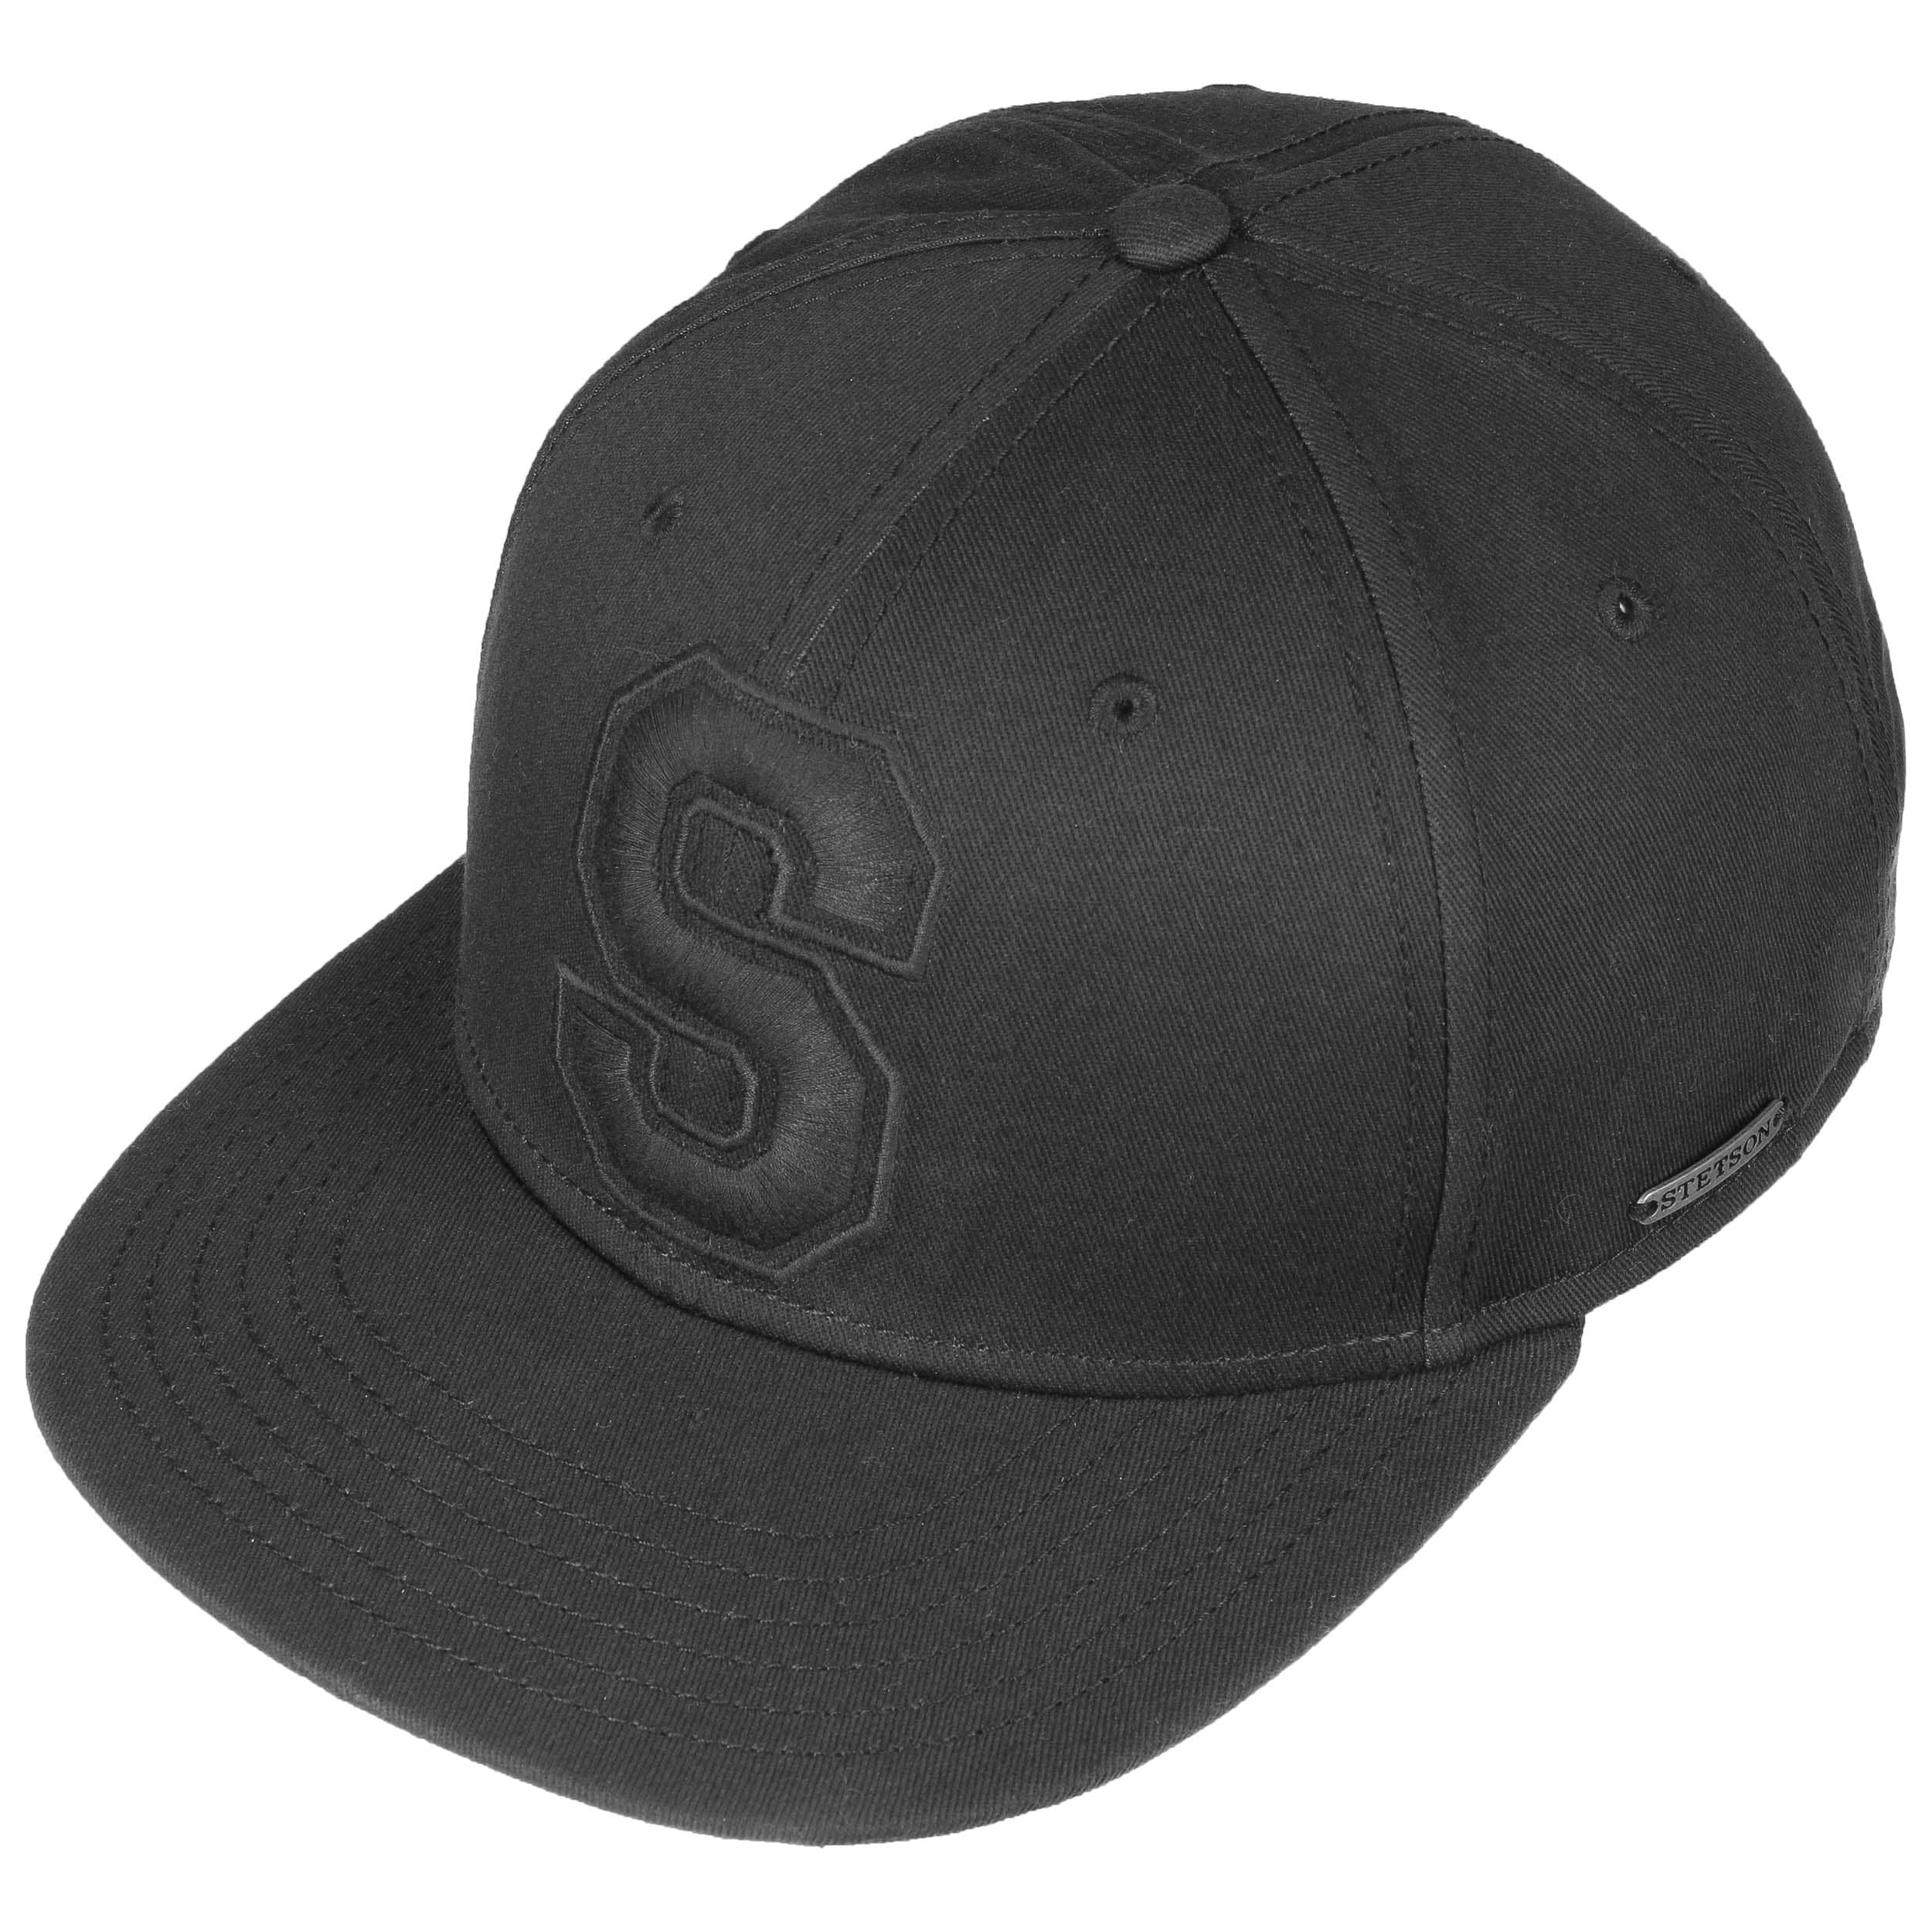 15b8430fc119 ... Capital S Cotton Baseball Cap by Stetson - black 1 ...